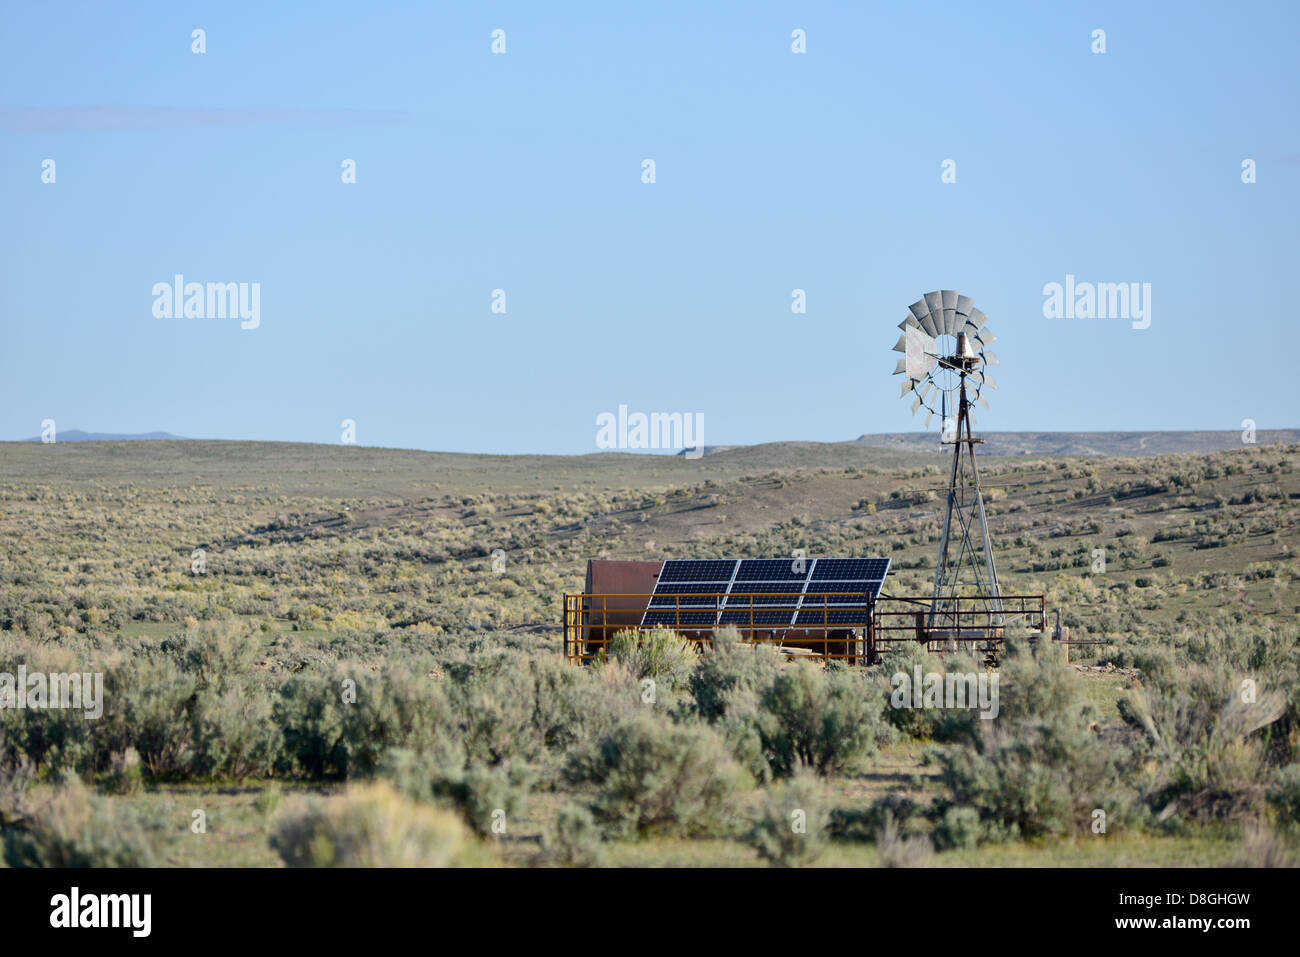 Wind pump and solar panels at a water tank in the Nevada desert. - Stock Image